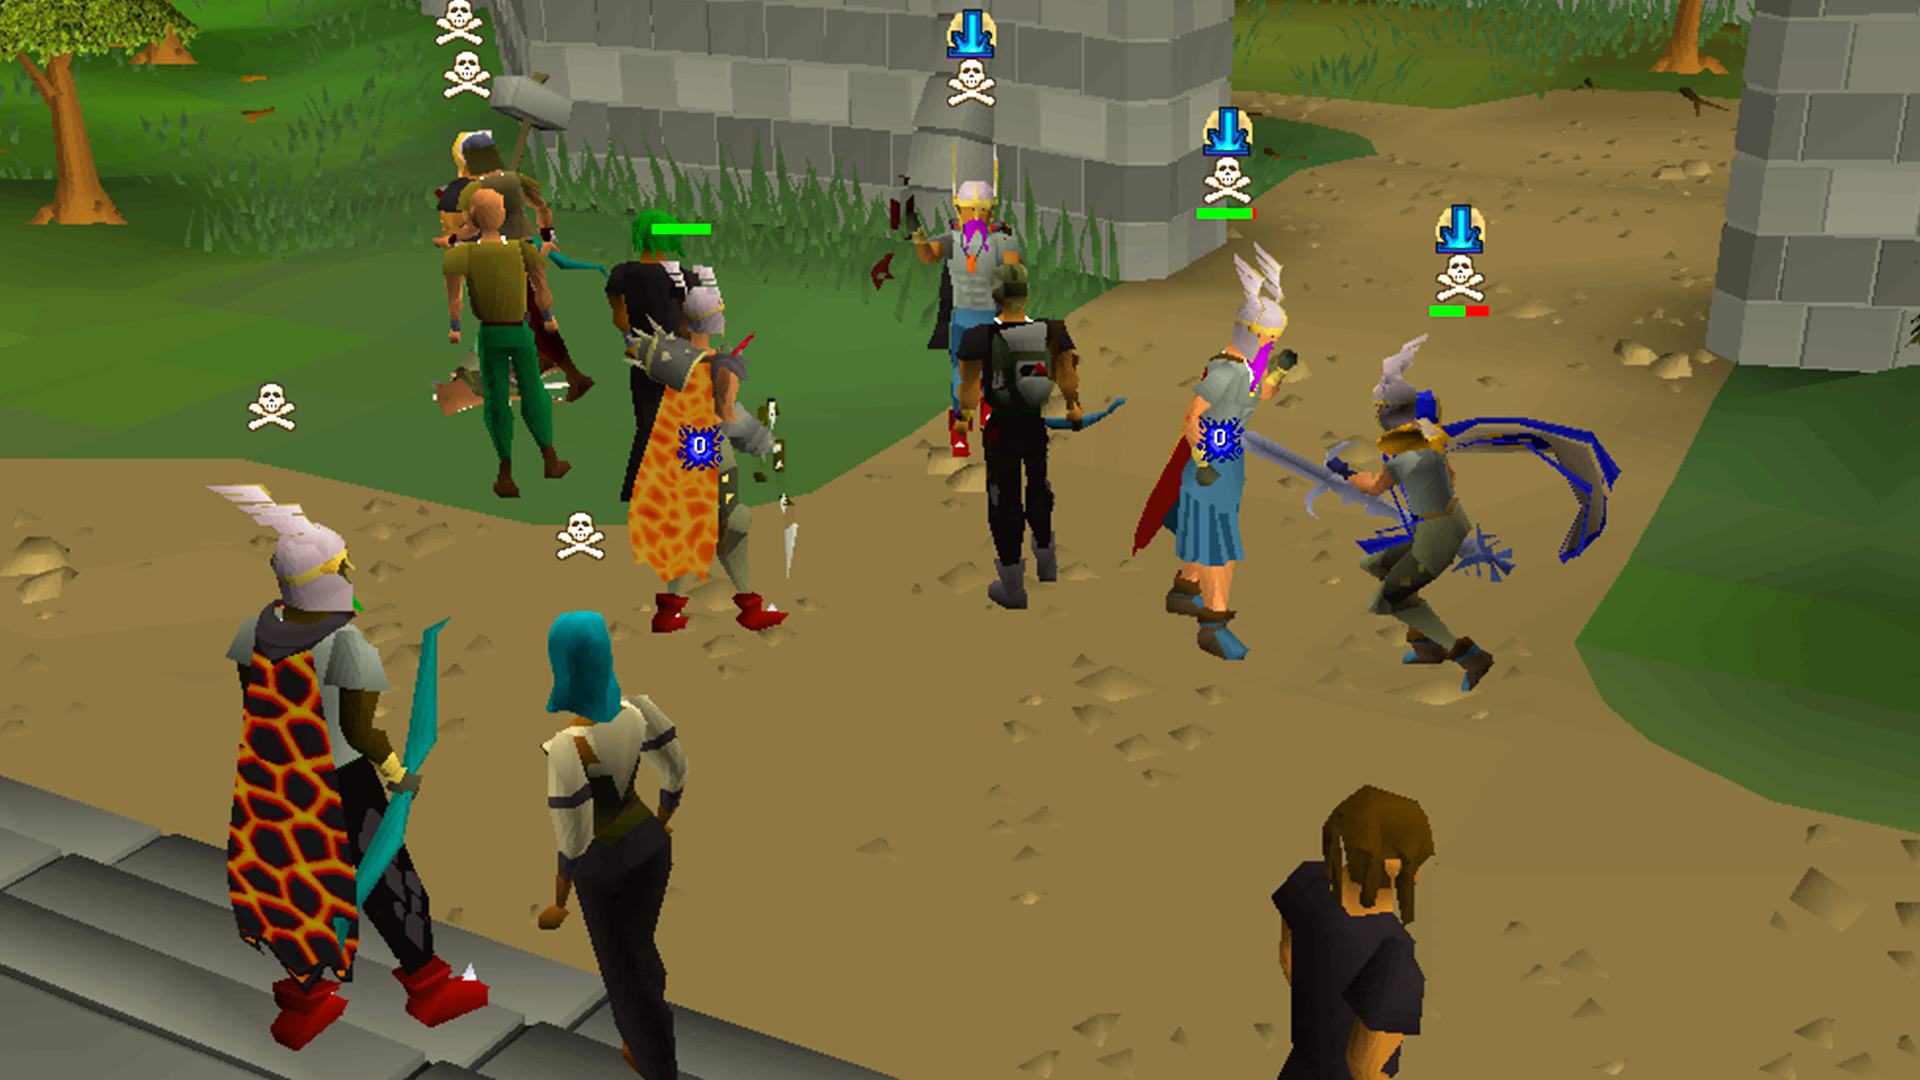 Iconic MMO Old School RuneScape launches on iOS and Android today